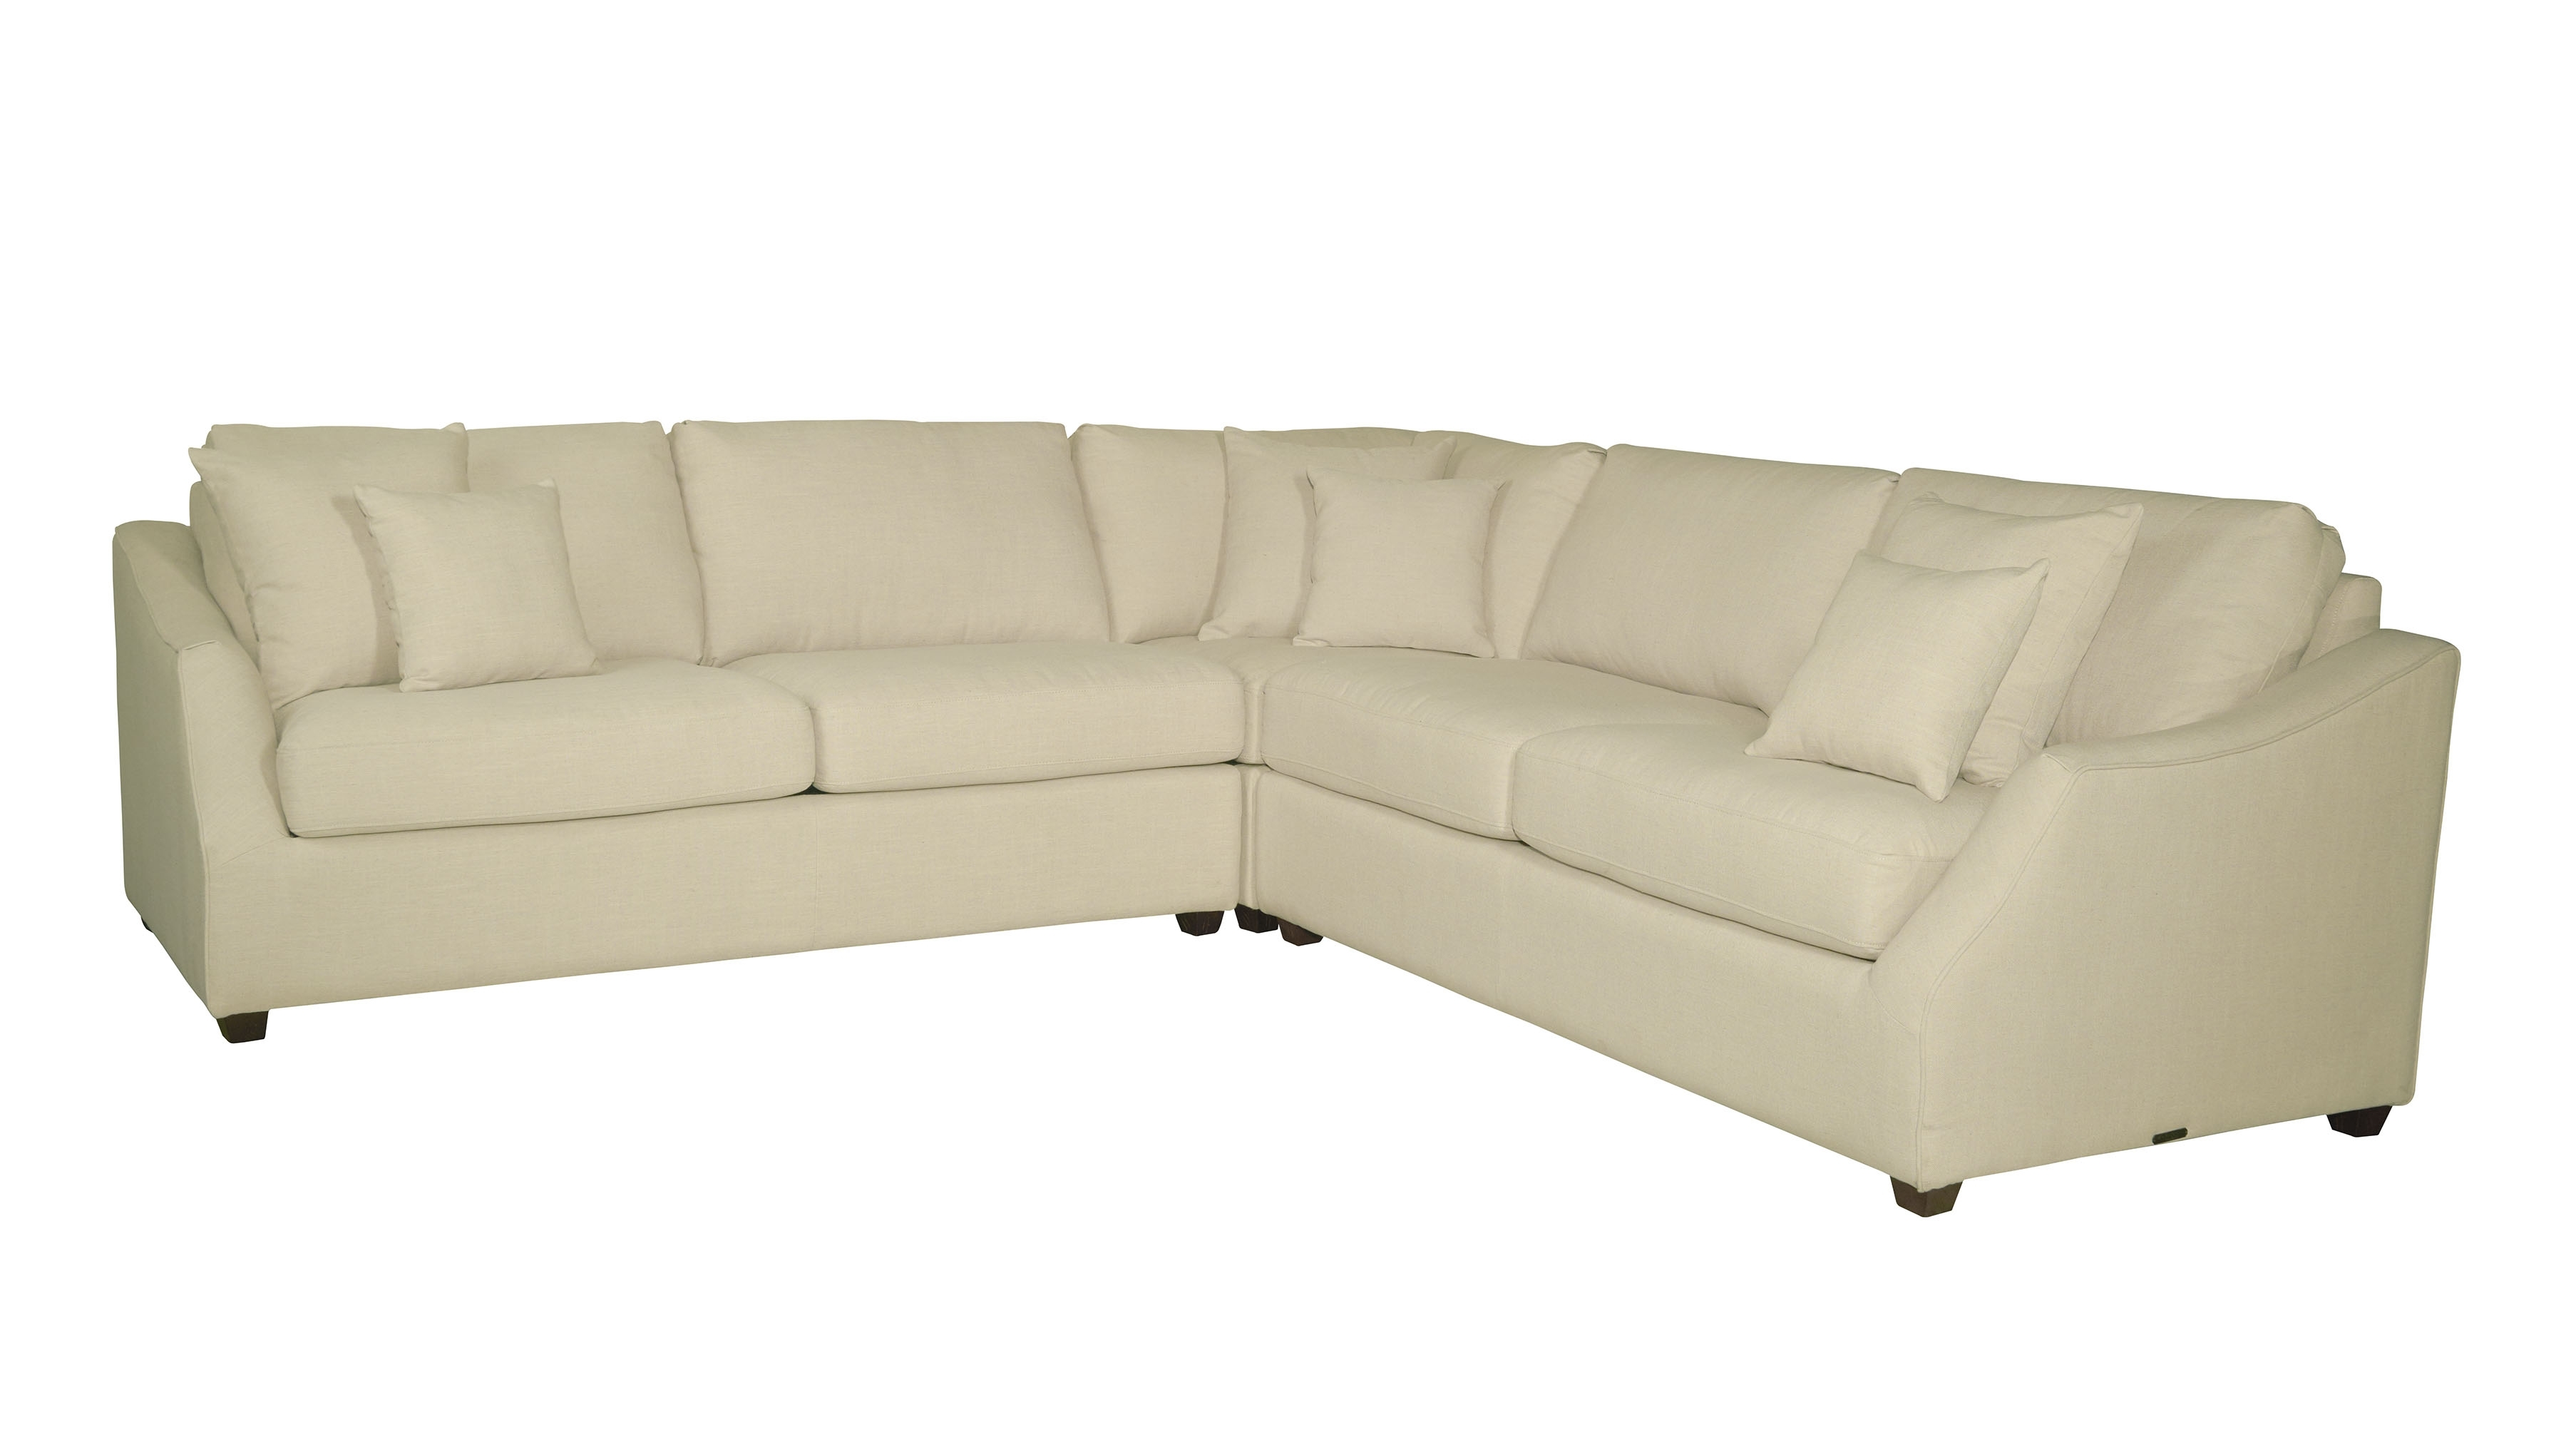 Homestead Sectional – Magnolia Home Throughout Magnolia Home Homestead 3 Piece Sectionals By Joanna Gaines (Image 11 of 25)